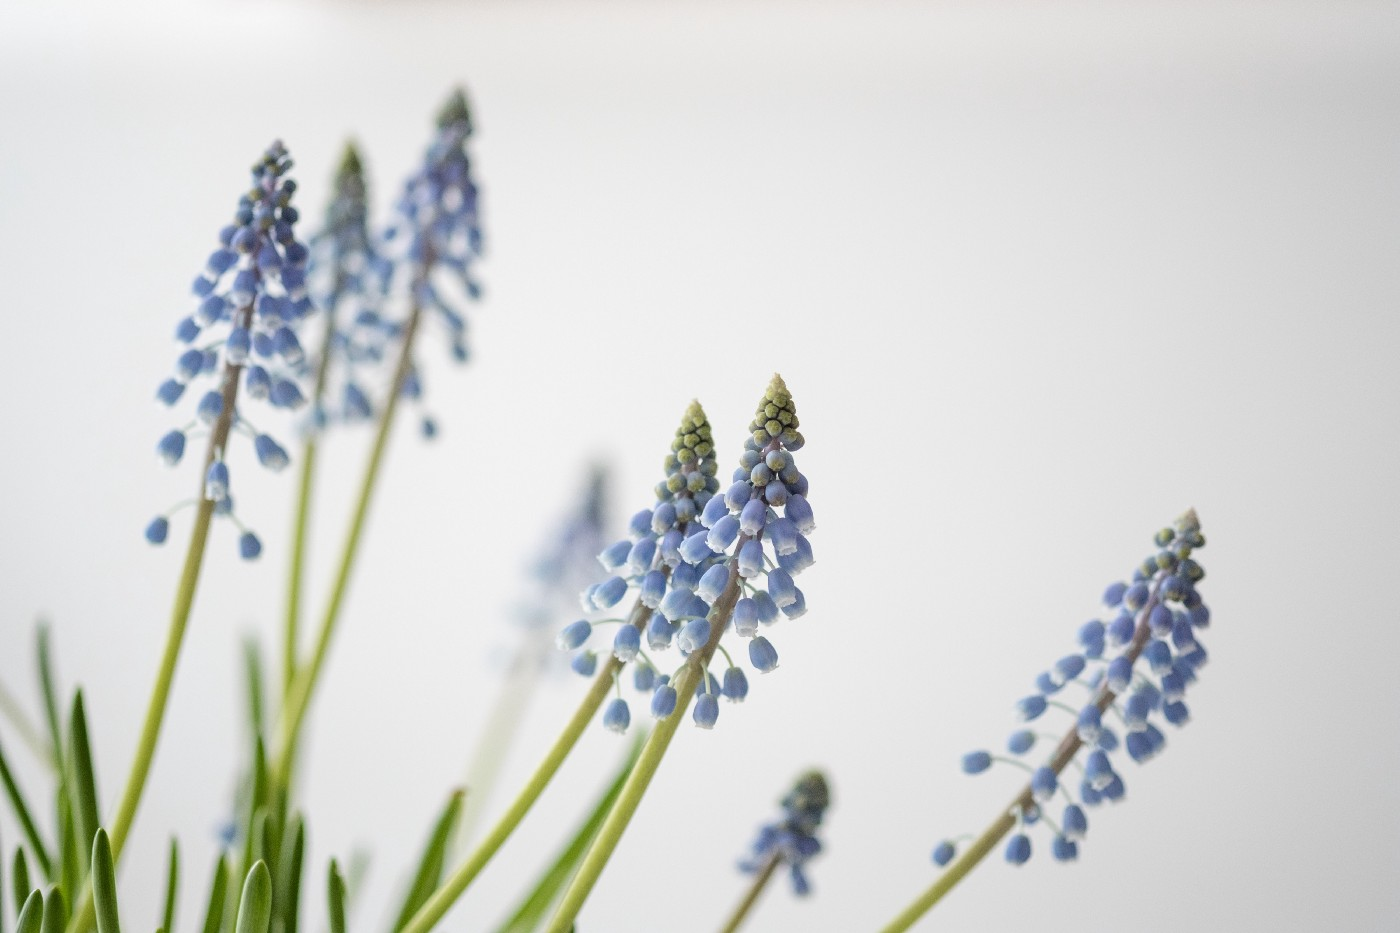 Blue flowers (Muscari) on a white background